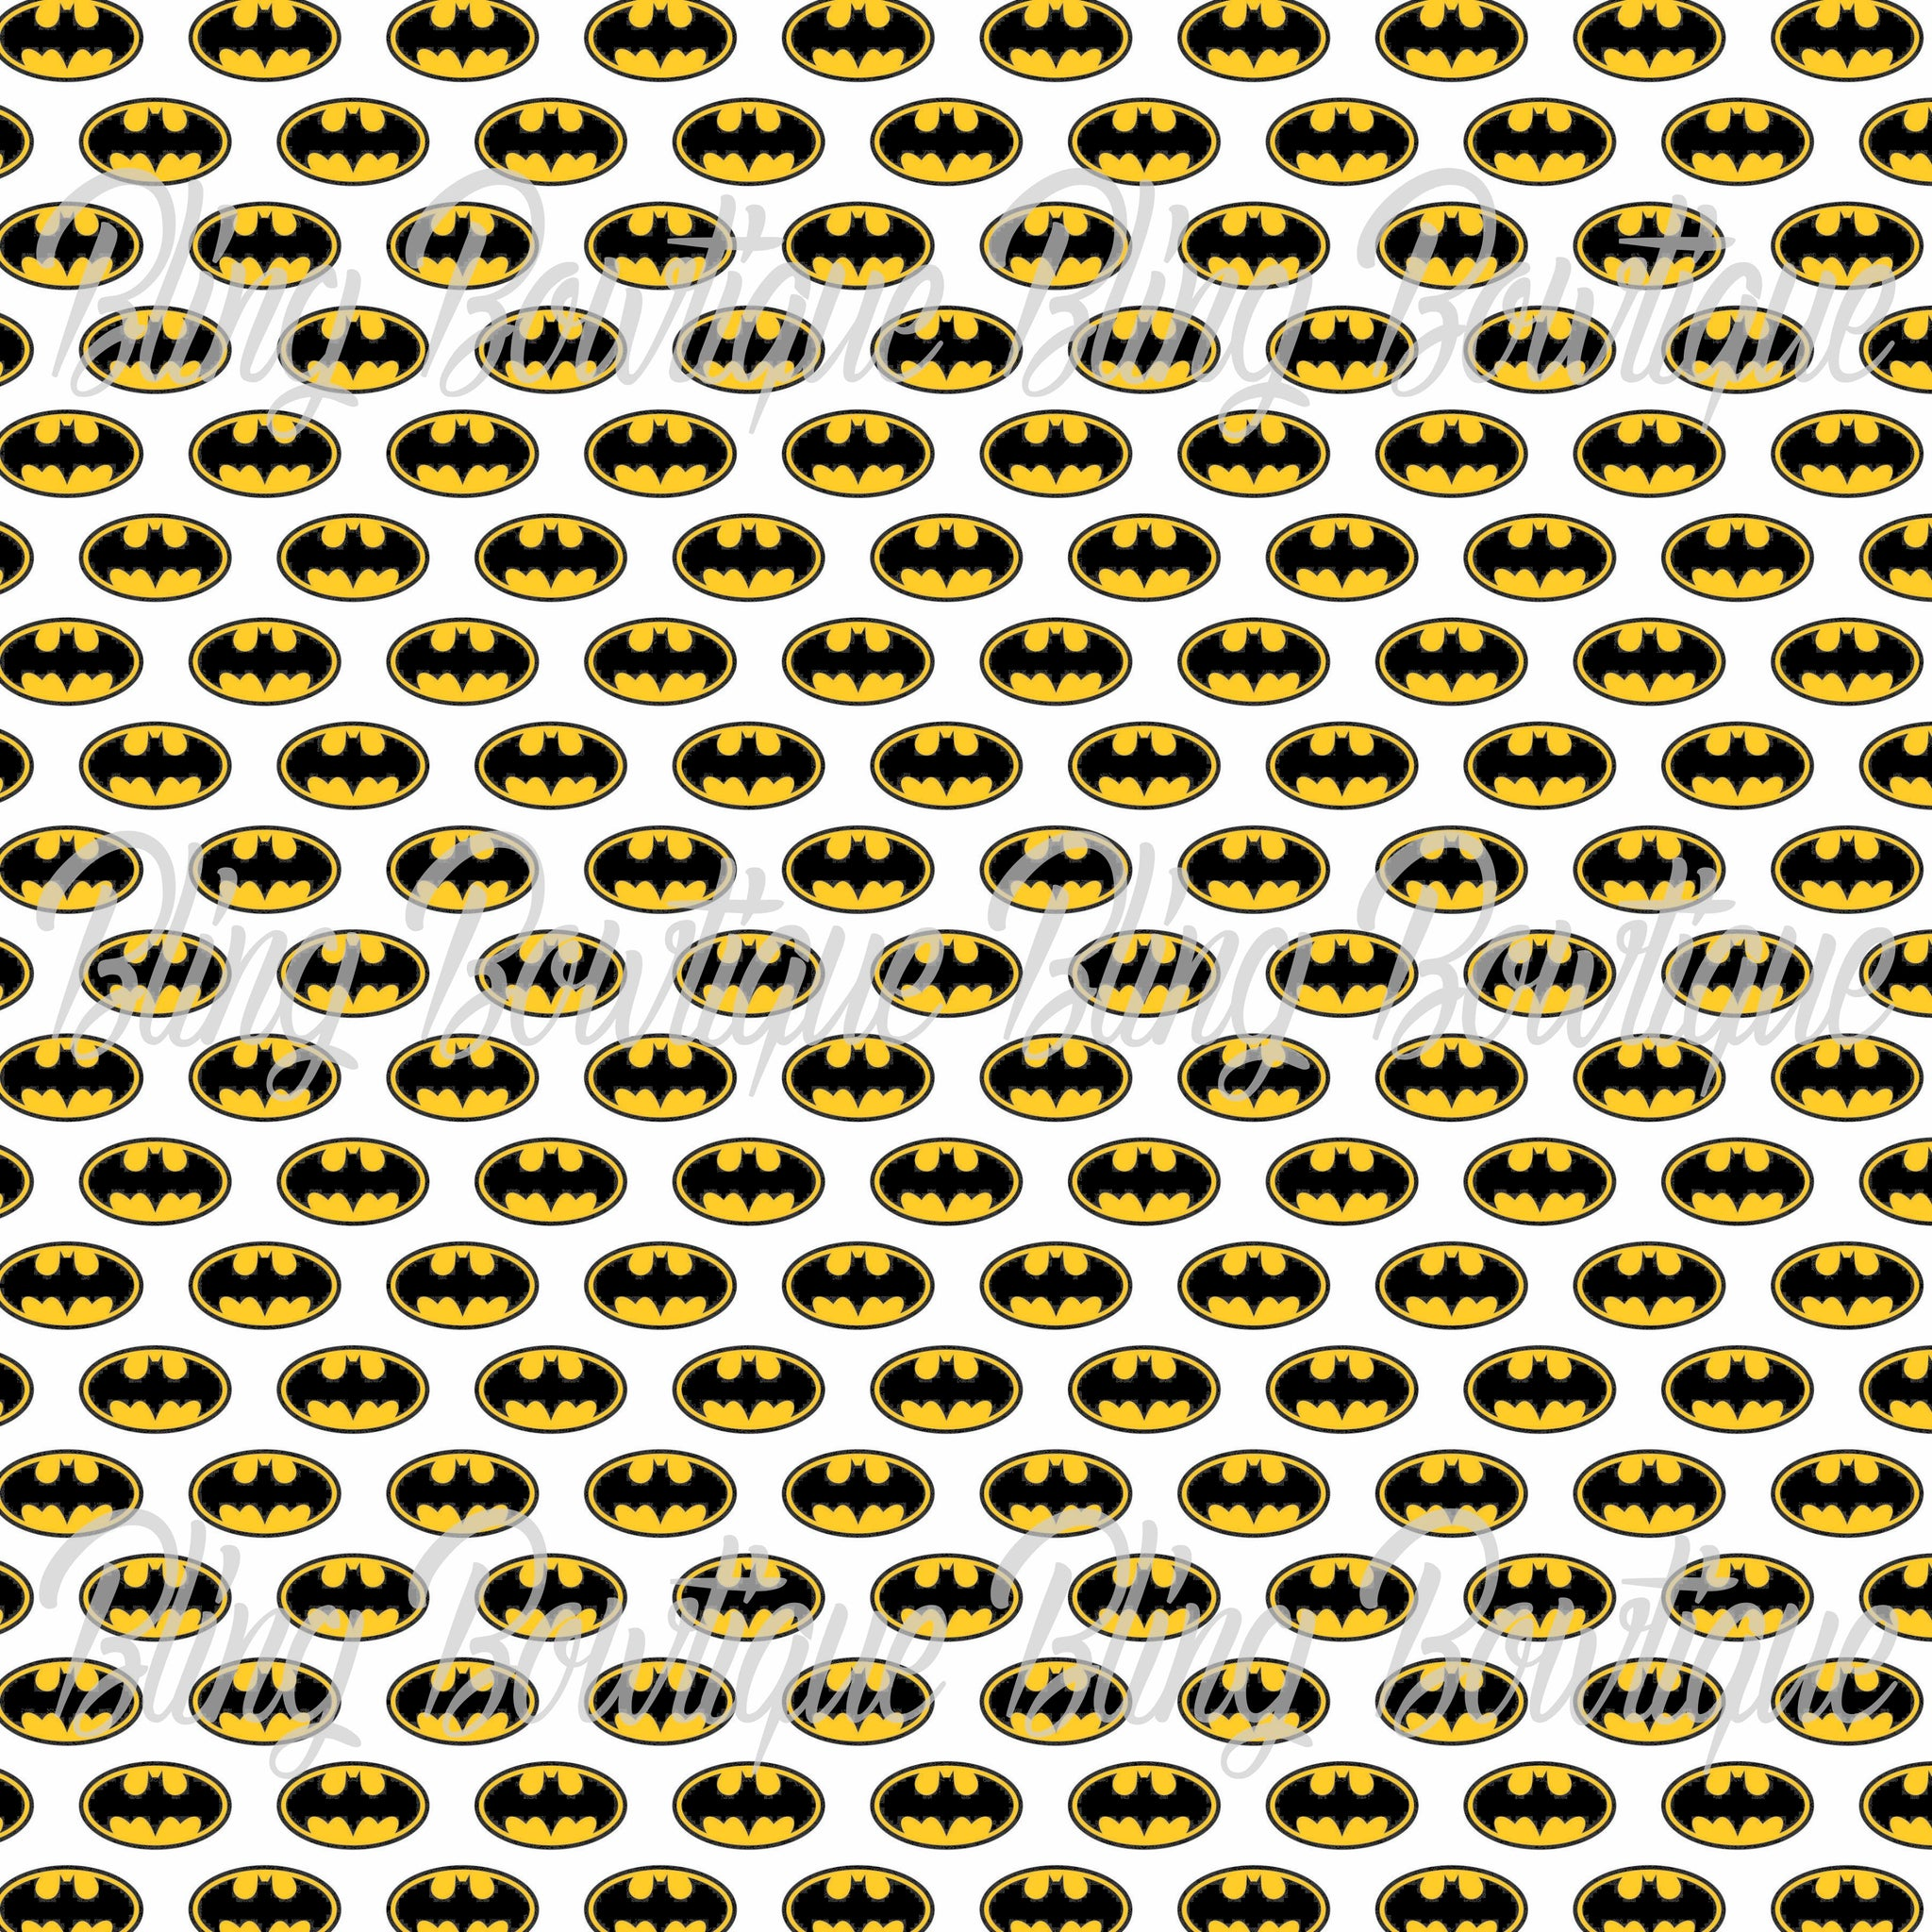 Batman Printed Glitter Canvas, Regular Canvas, Faux Leather For Bows